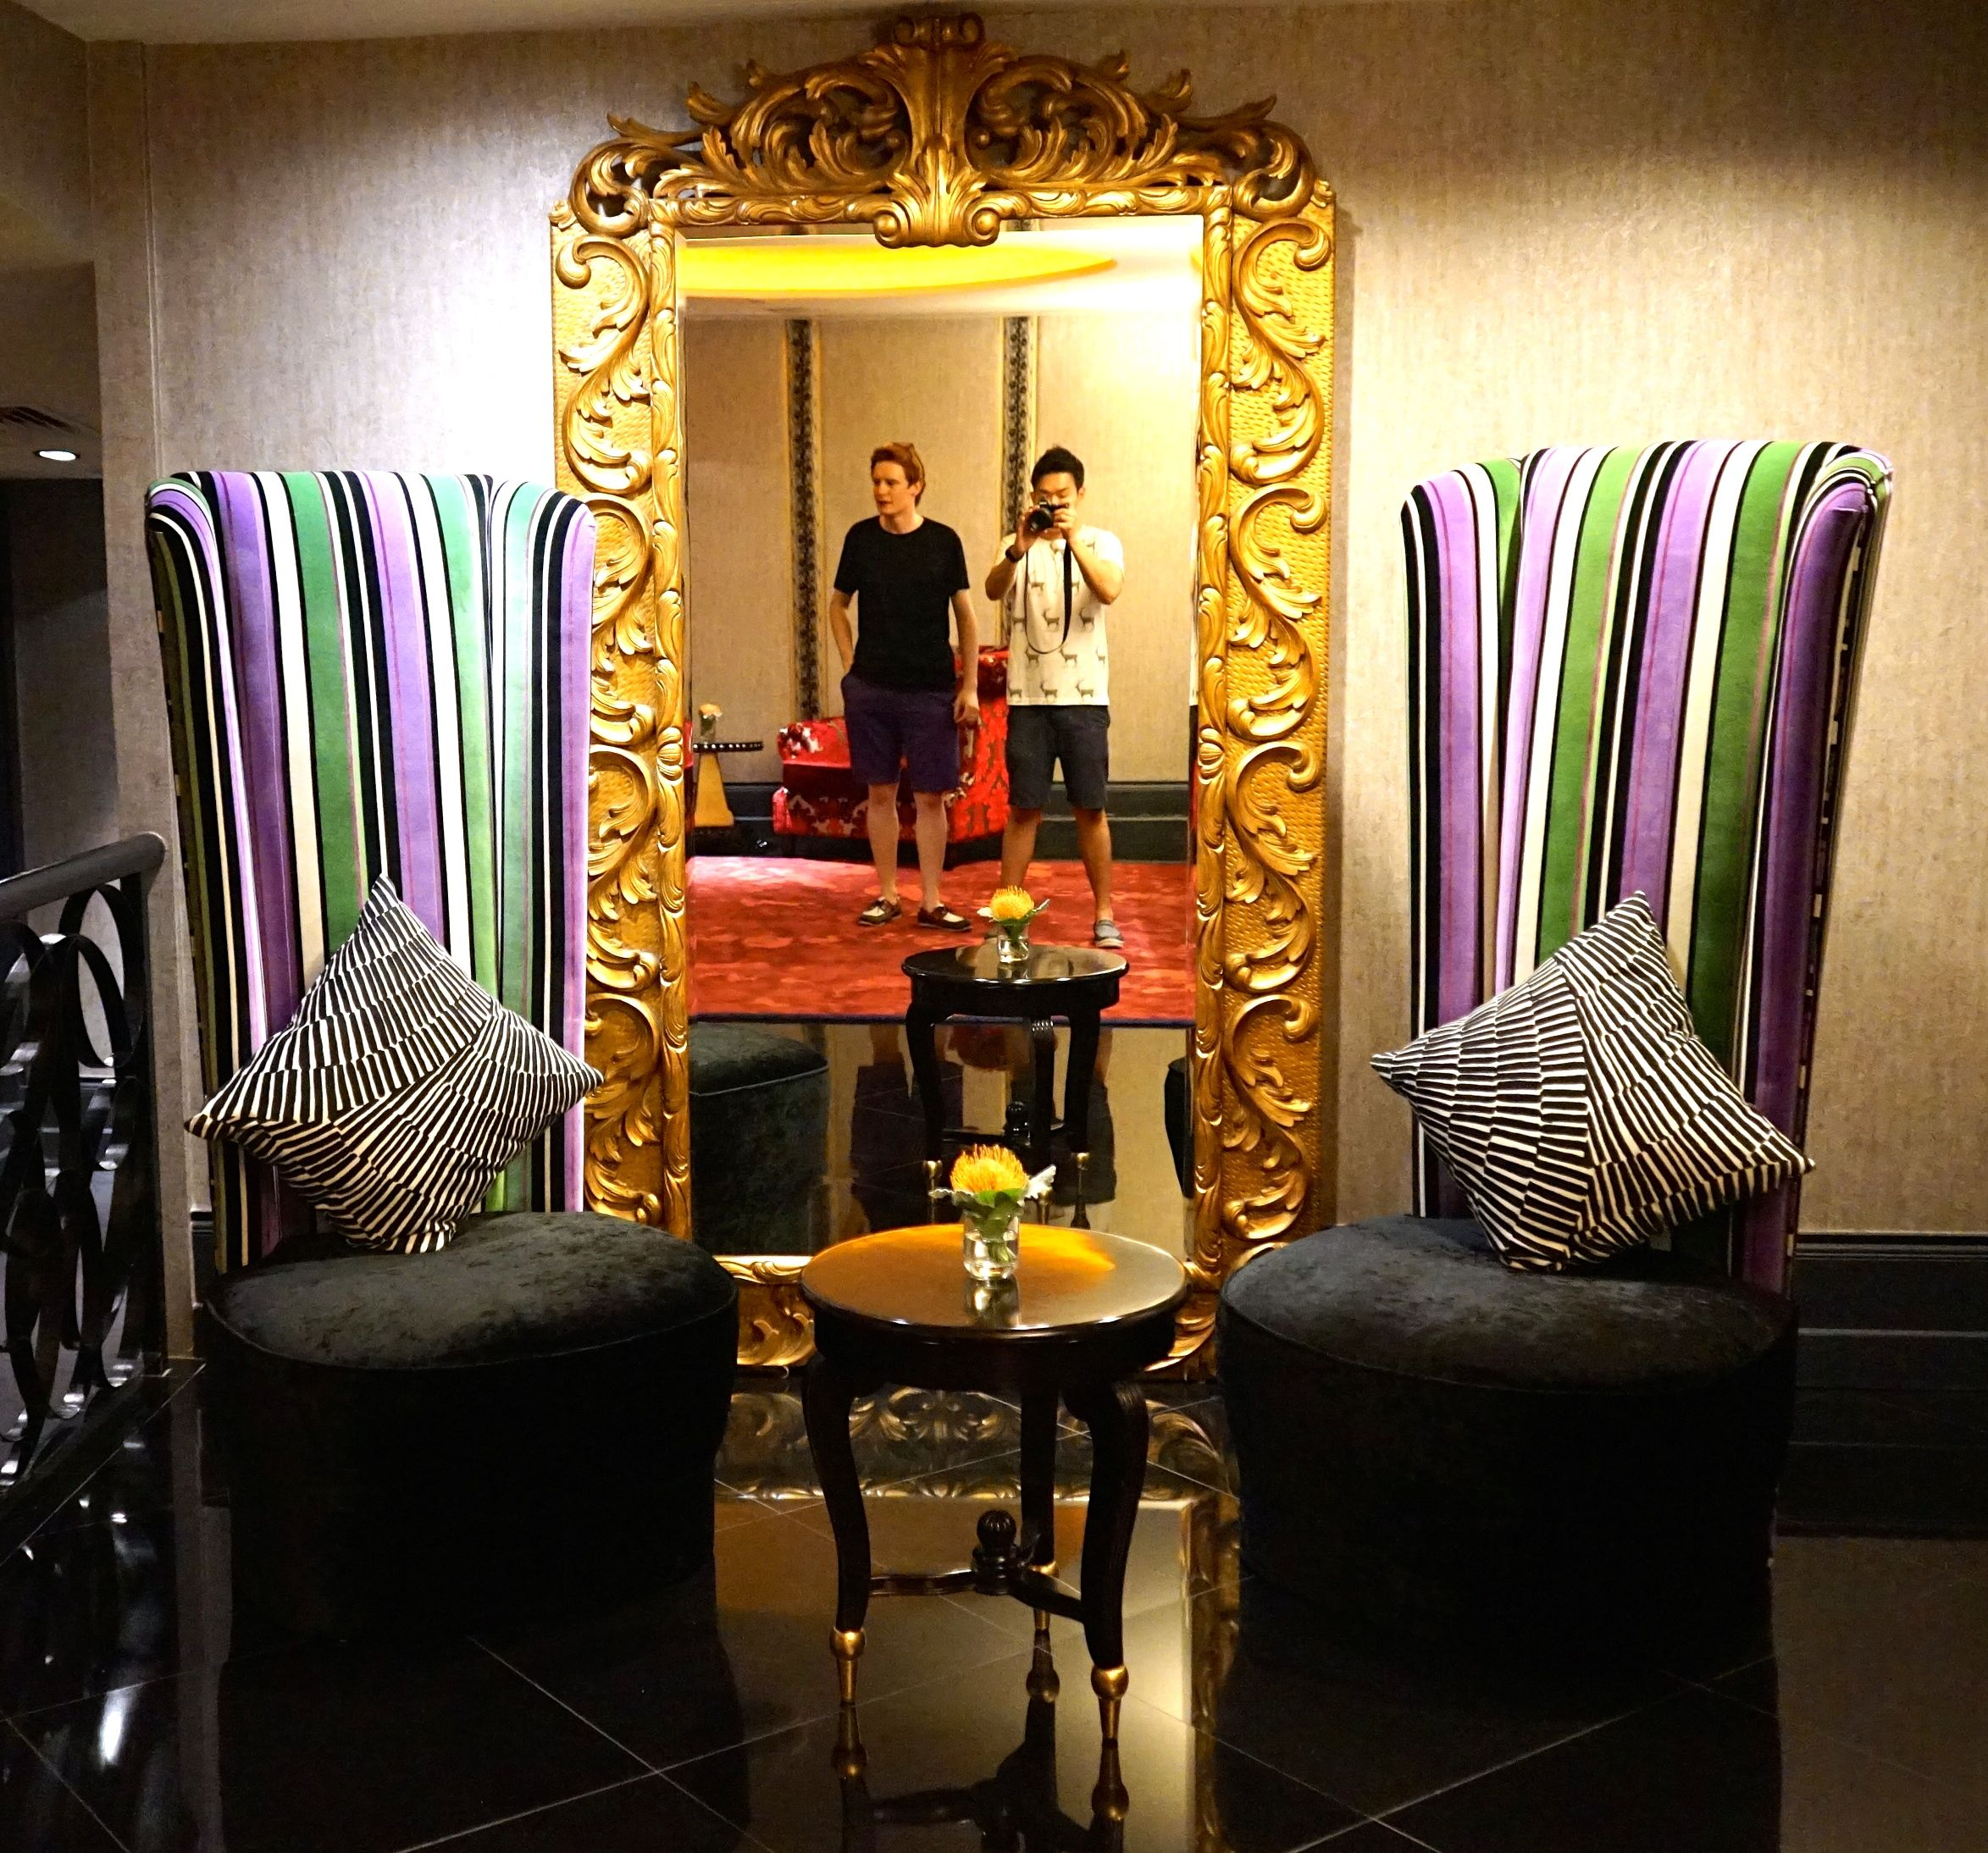 The Scarlet Singapore - Famed Luxurious Theme Boutique Hotel